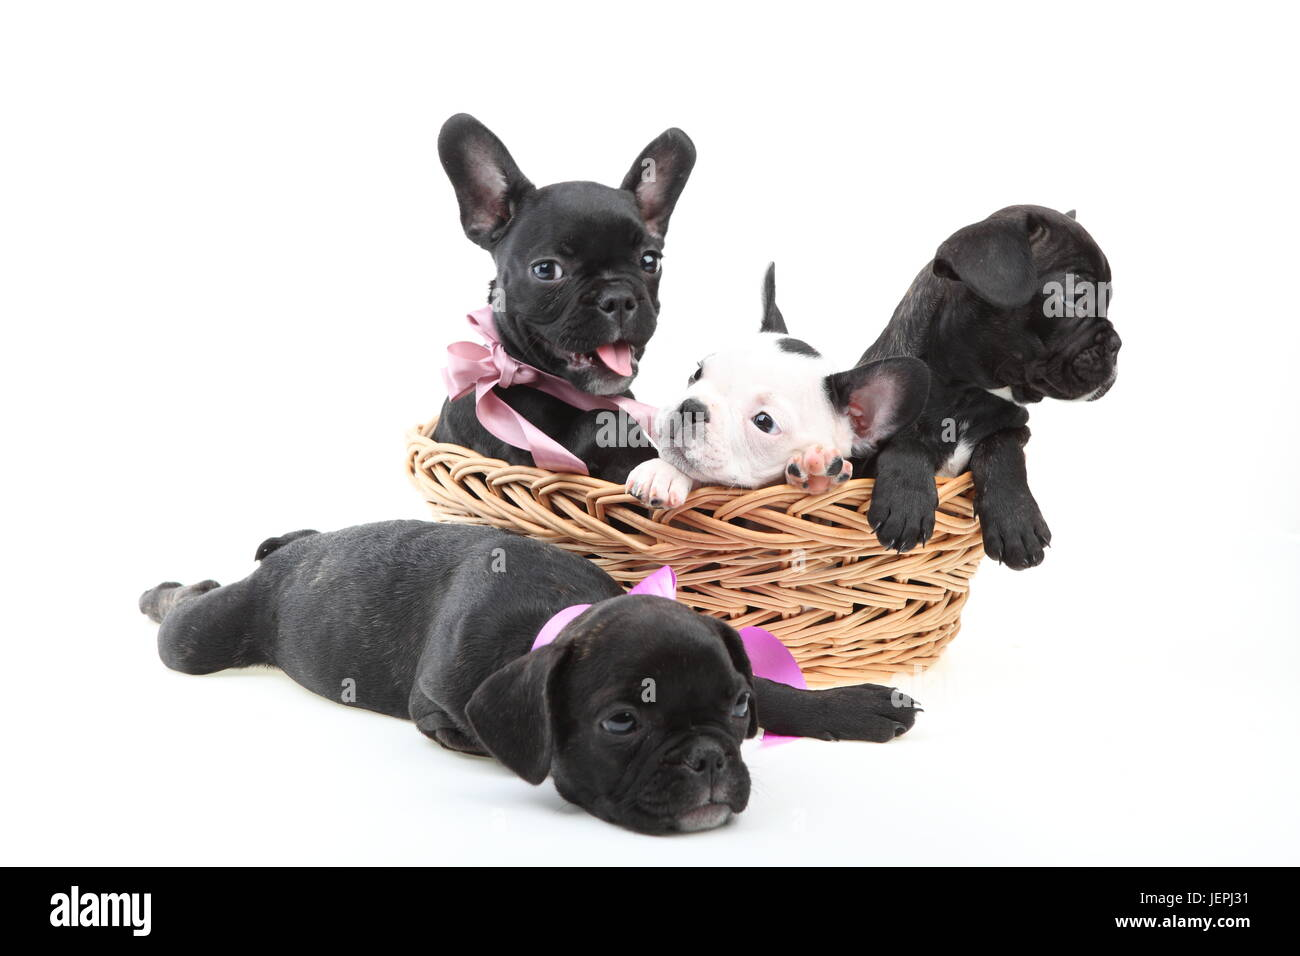 Cute pet dog - Stock Image